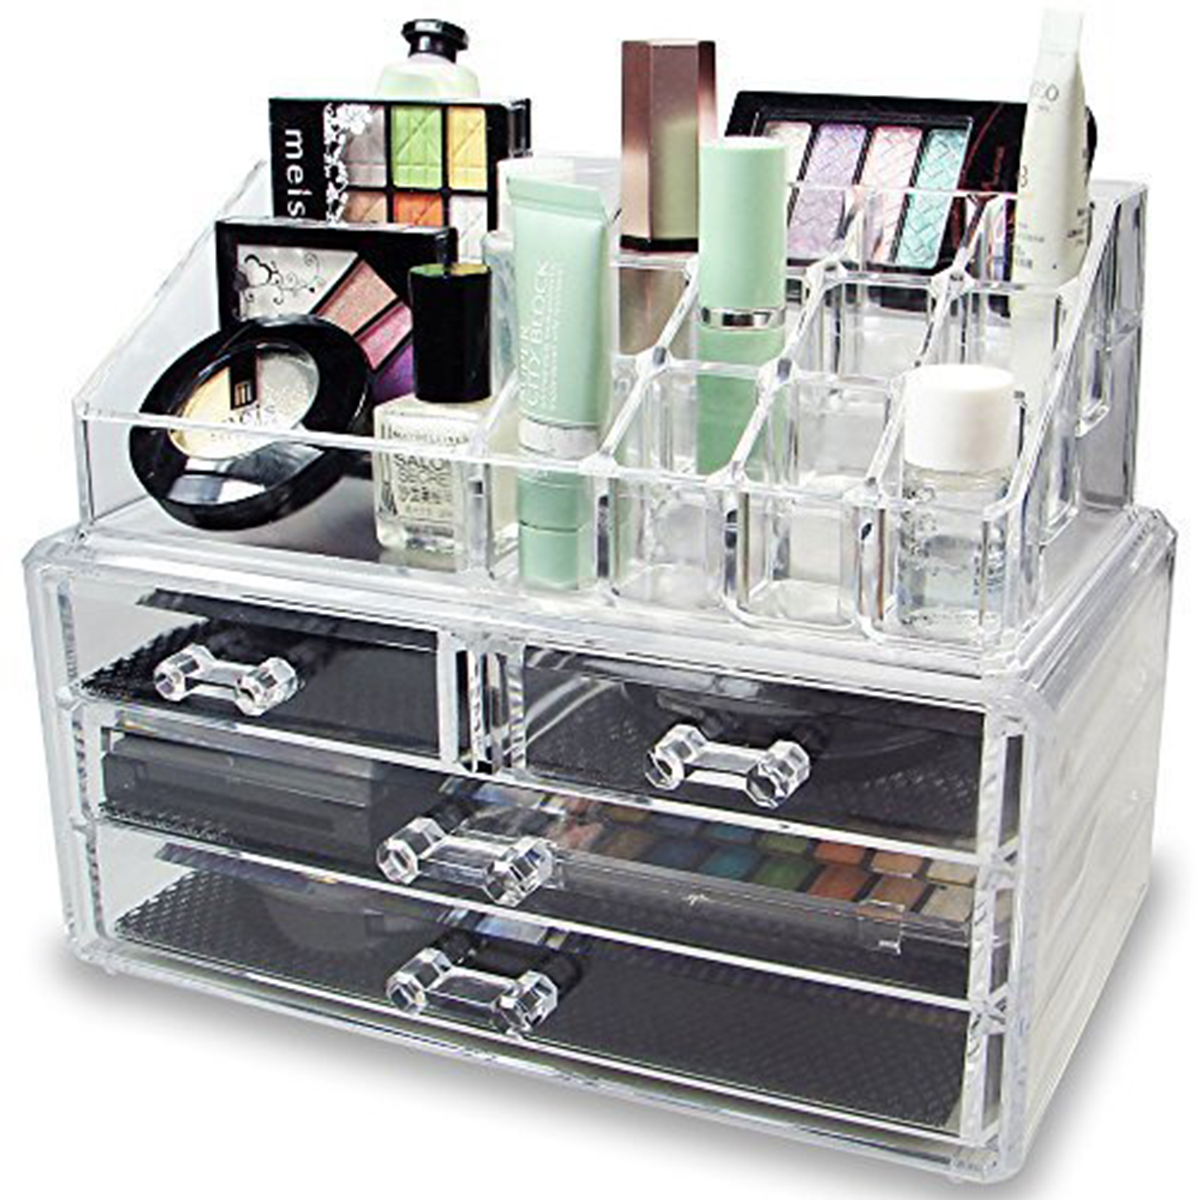 Design Makeup Organizers a totally pragmatic guide to the best makeup organizers racked sure storing your brushes in an old diptyque baies candle is cute but its not necessary have pinterest level creativity a